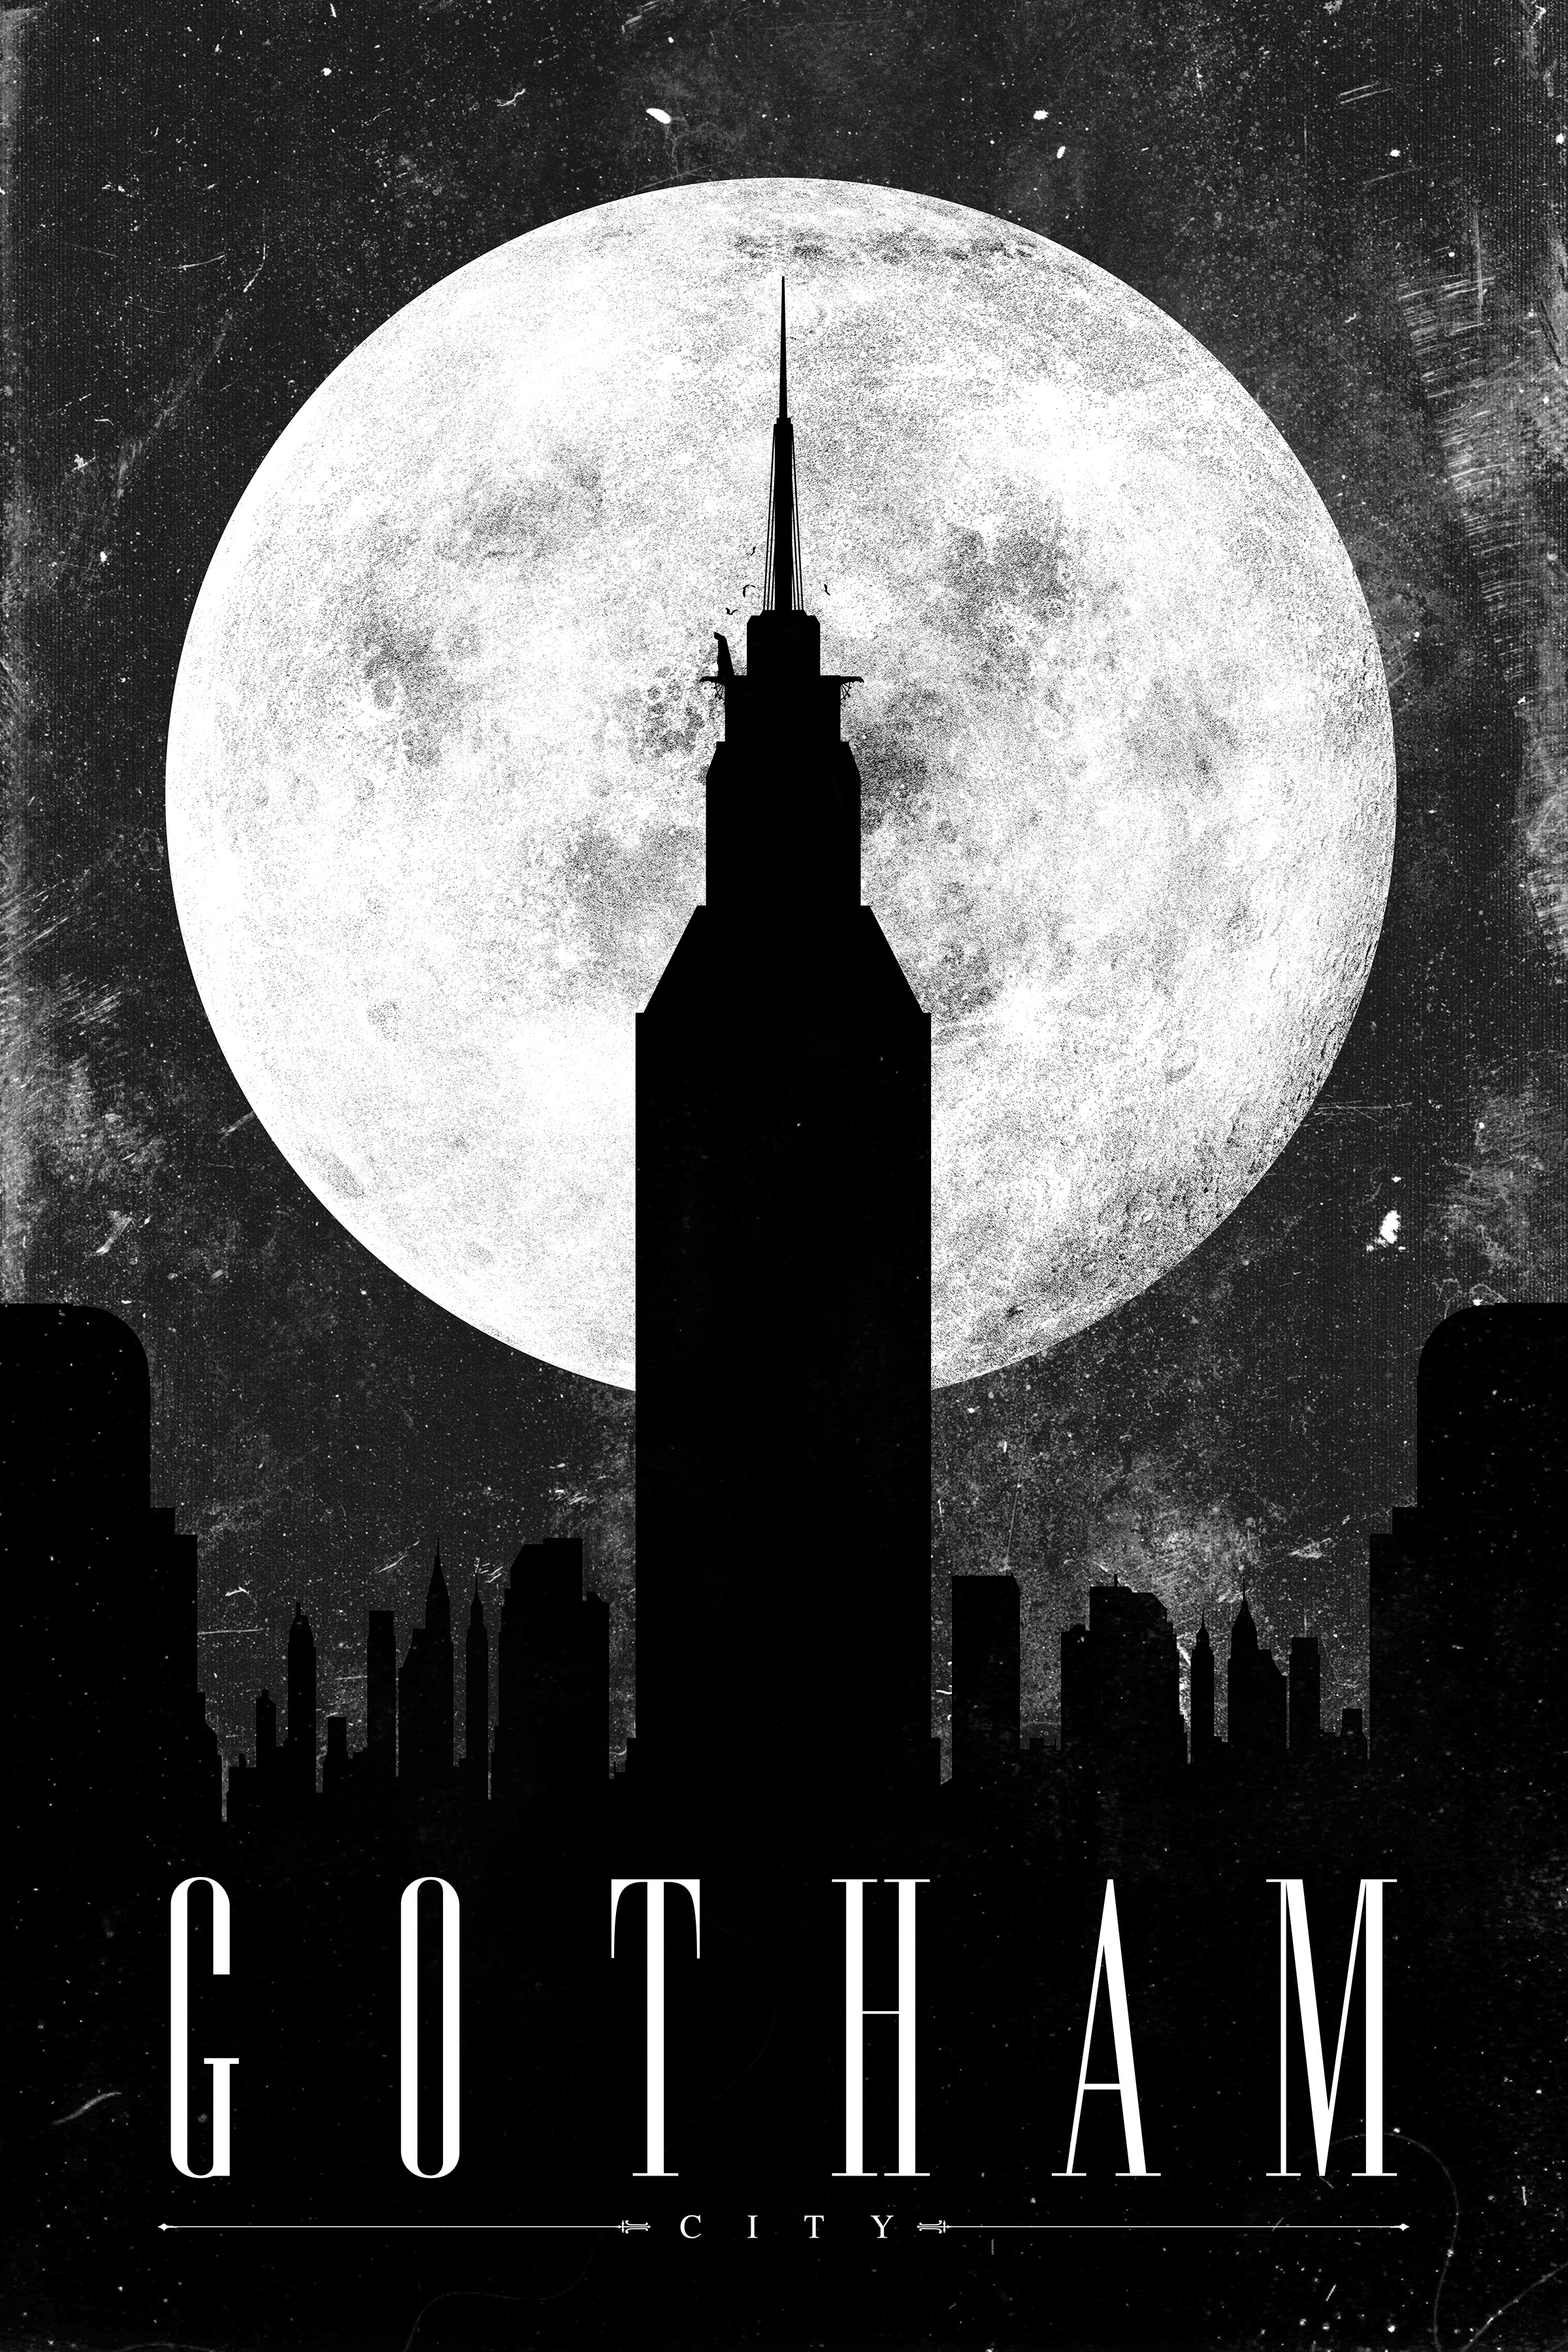 [Jeu] Association d'images Van-genderen-gotham